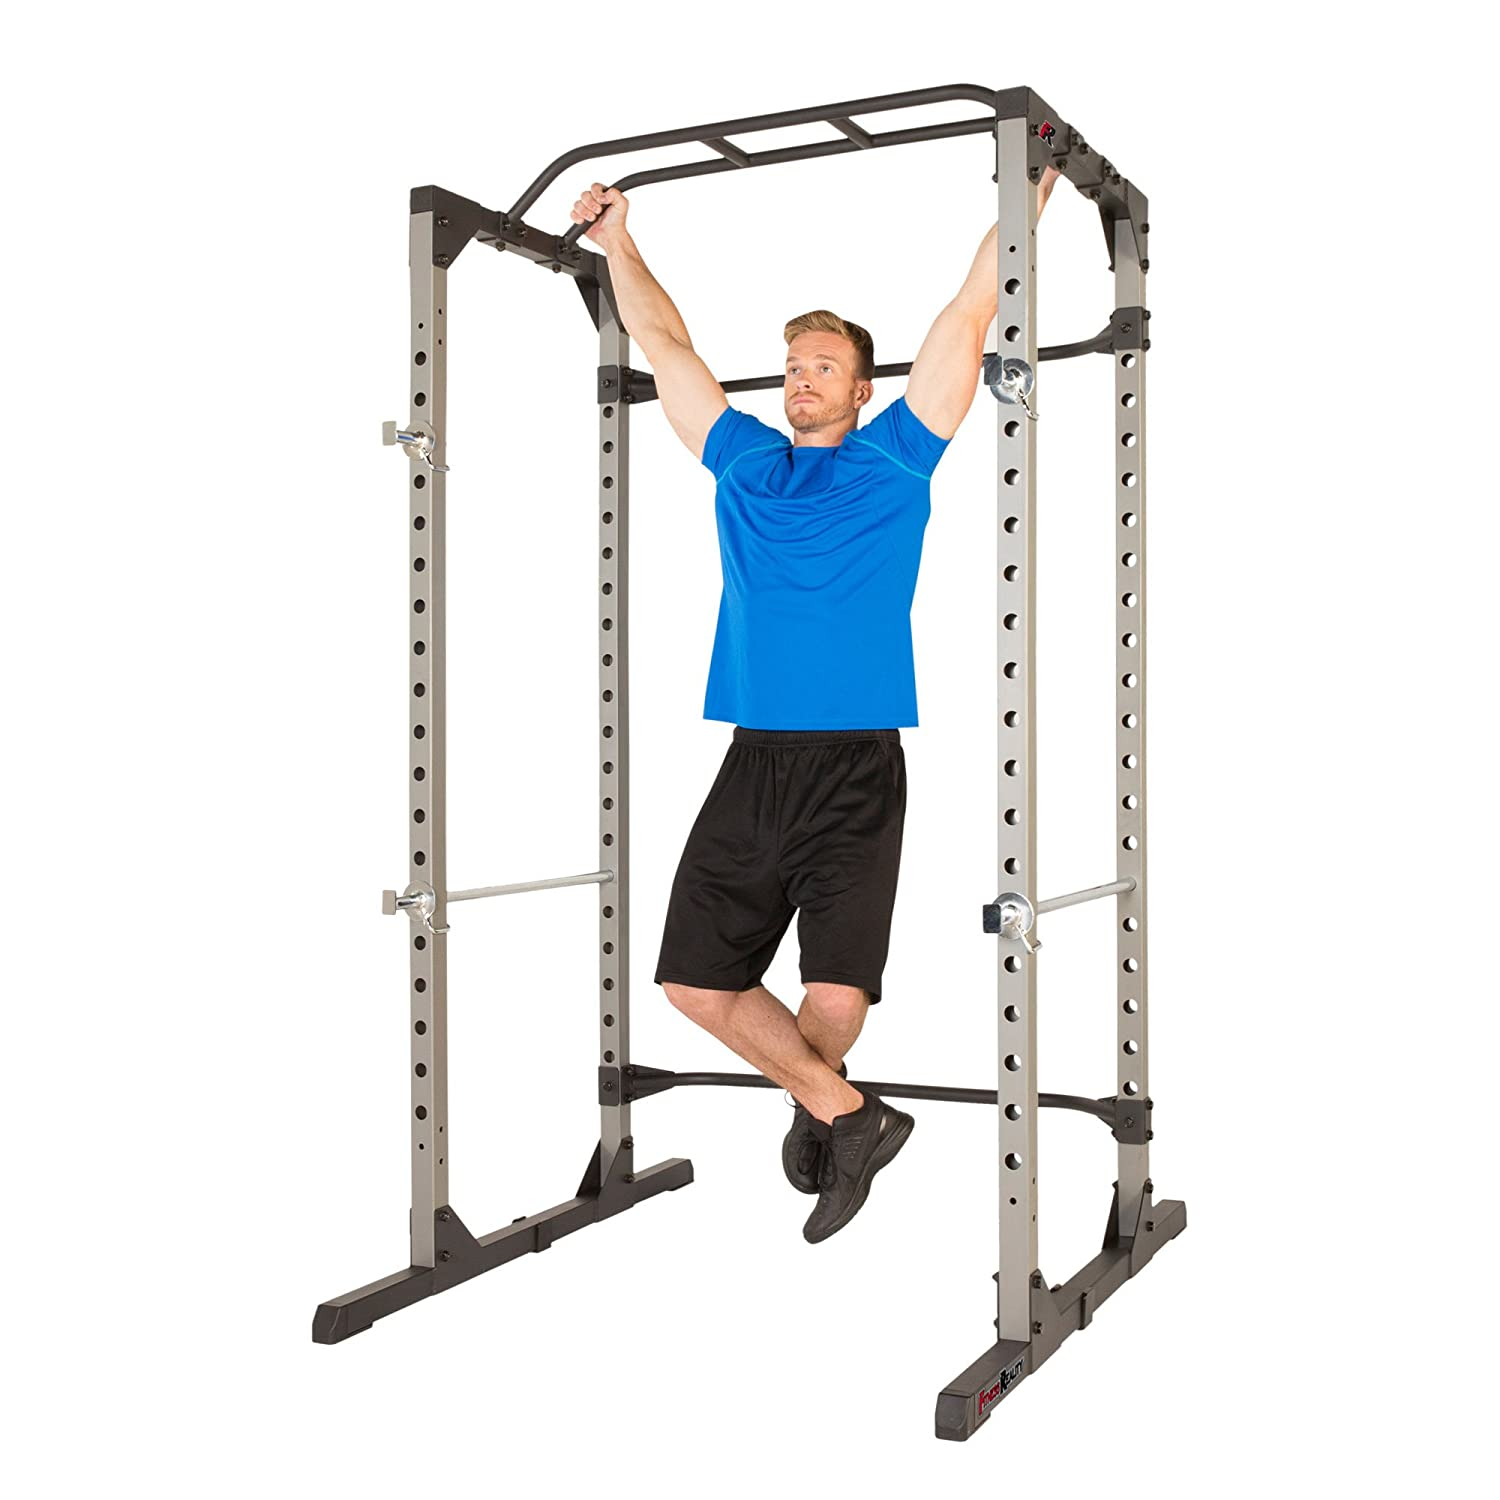 Fitness Reality 810xlt Super Max Power Cage Review